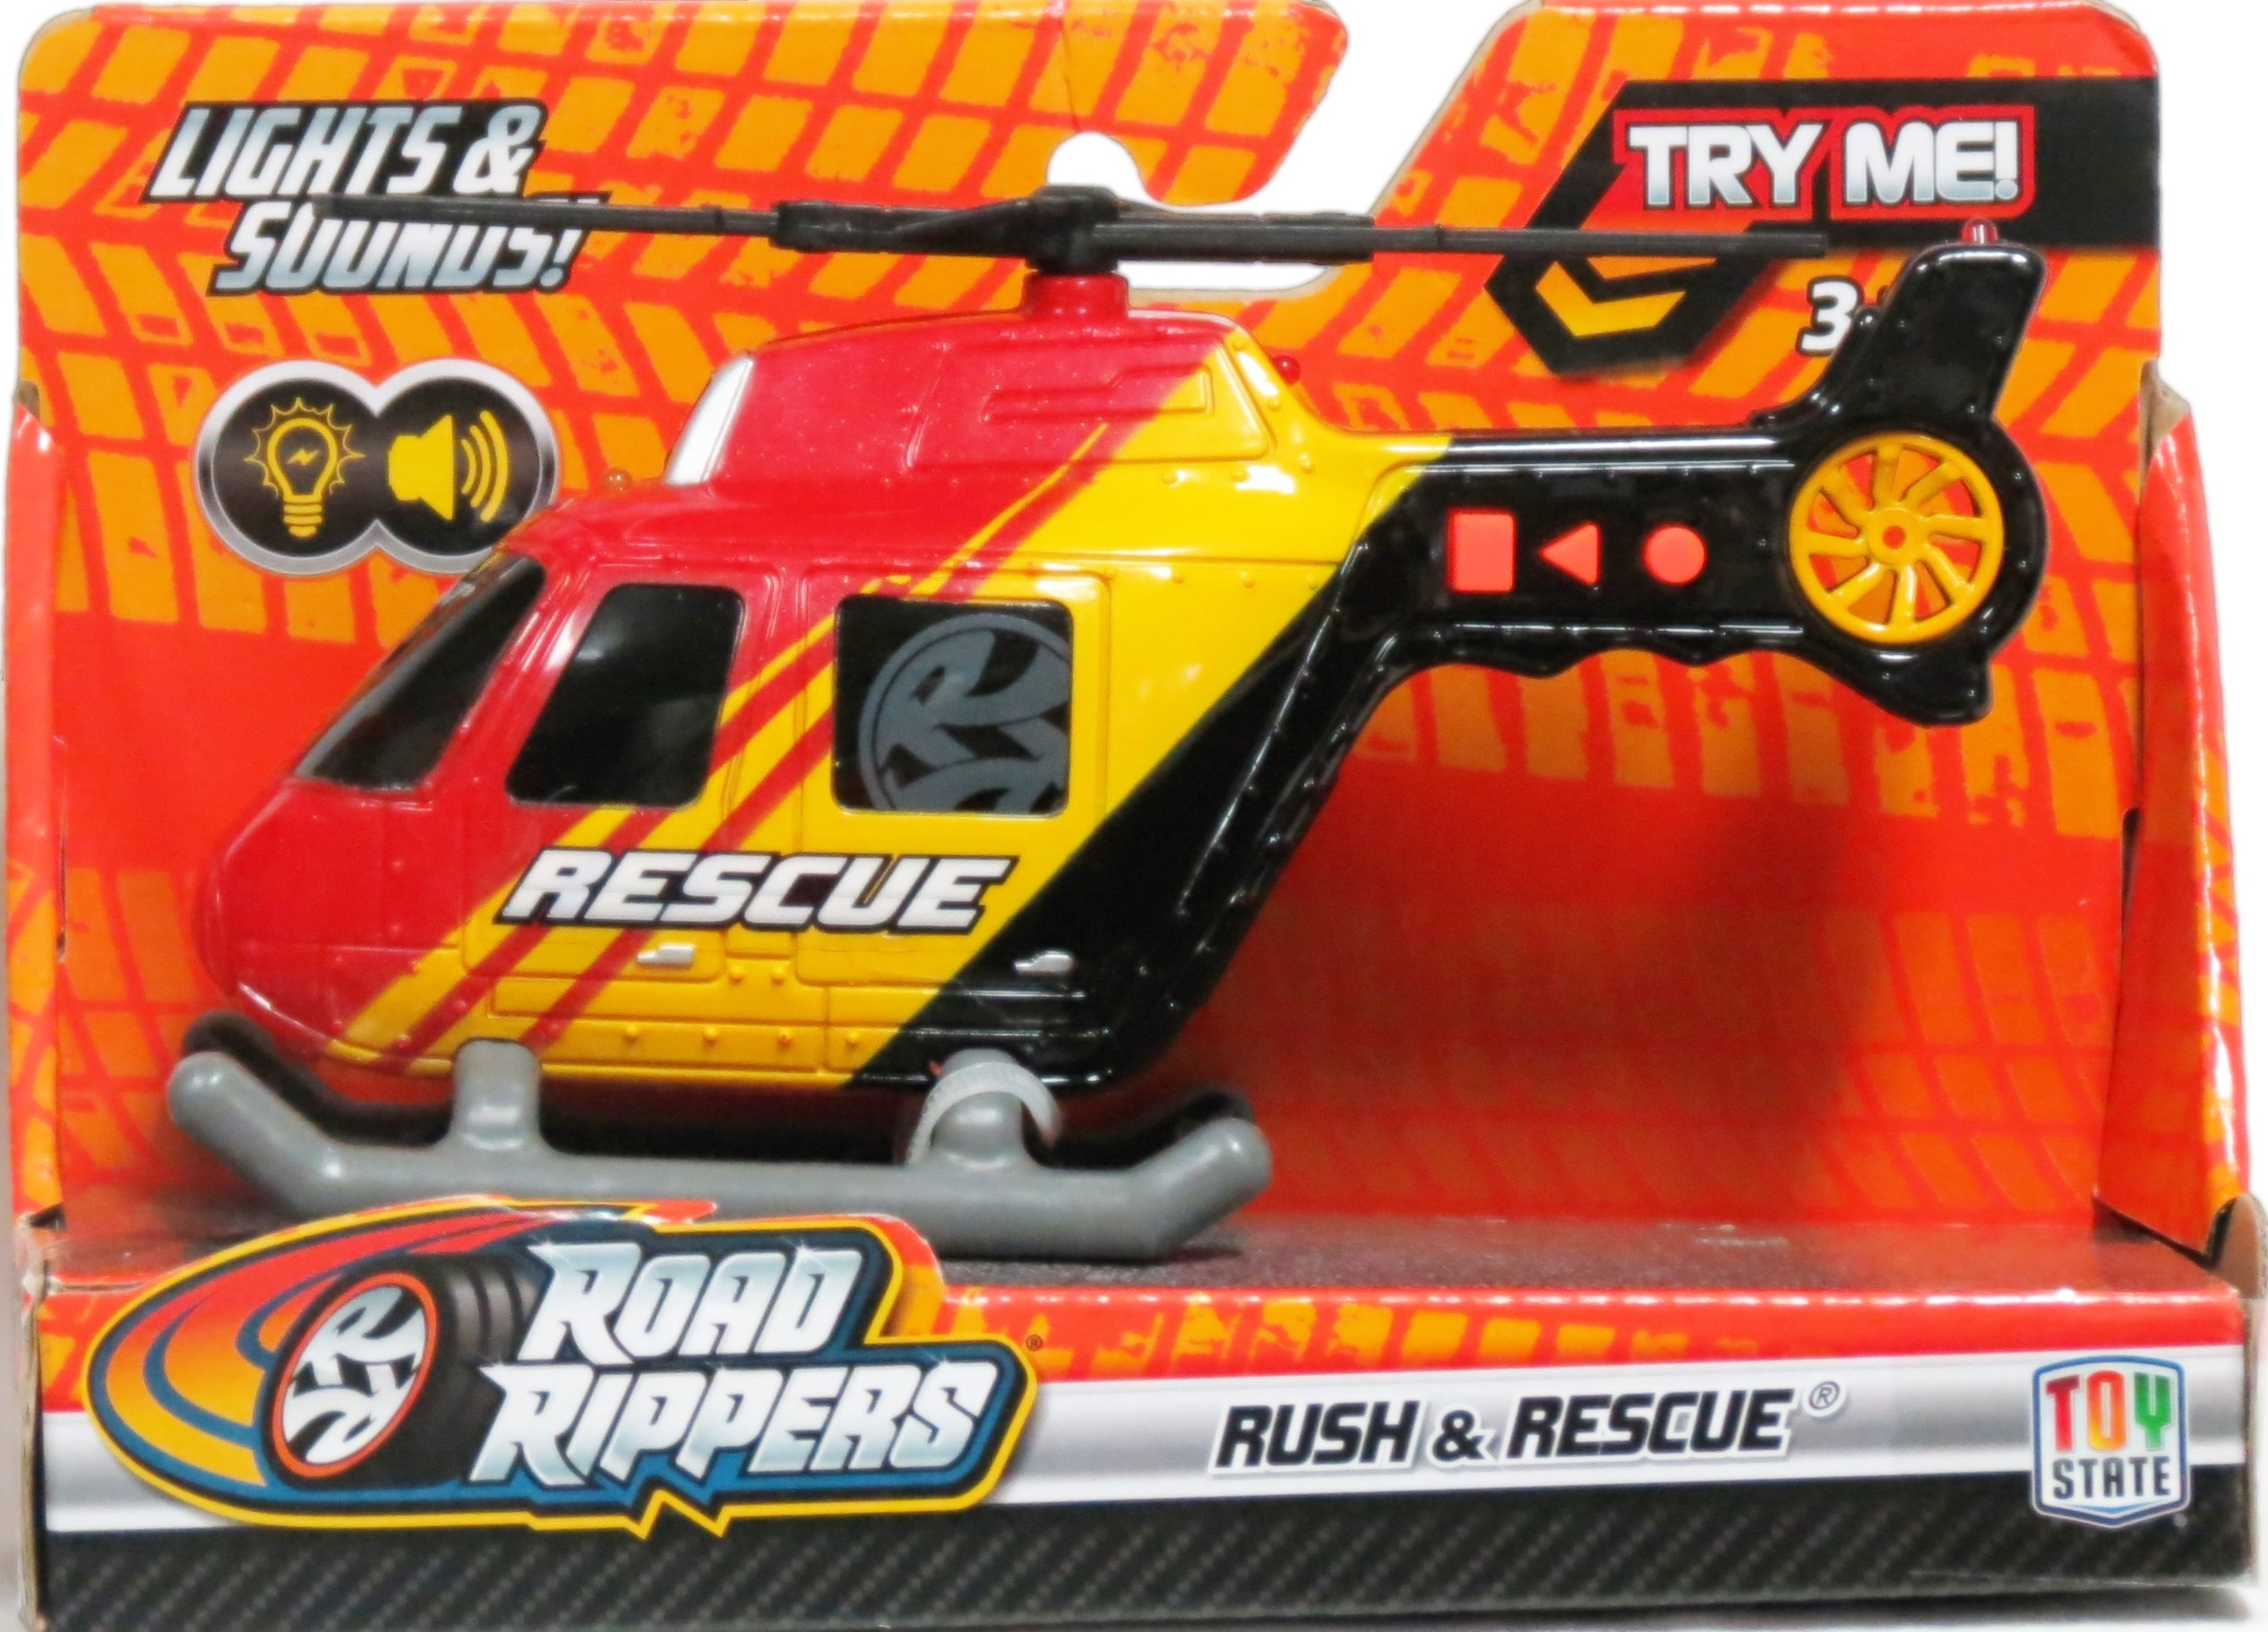 road rippers helicopter with Road Rippers Toy State Rush Rescue Lights Sounds Helicopter 63015f7182c73fa4 on Helicopter Scrambled In Dramatic Off Road Police Chase Through Hatfield 1 3222117 together with Snorkel Gear moreover Mini City Vehicles besides 12 Rush Rescue likewise Toy State Emergency City Vehicles Set Of 10 Police Fire Truck Ambulance Action News Helicopter Taxi Bus Recycle Garbage Tow Trucks All Free Wheeling Some With Moving Parts Imagination Play.